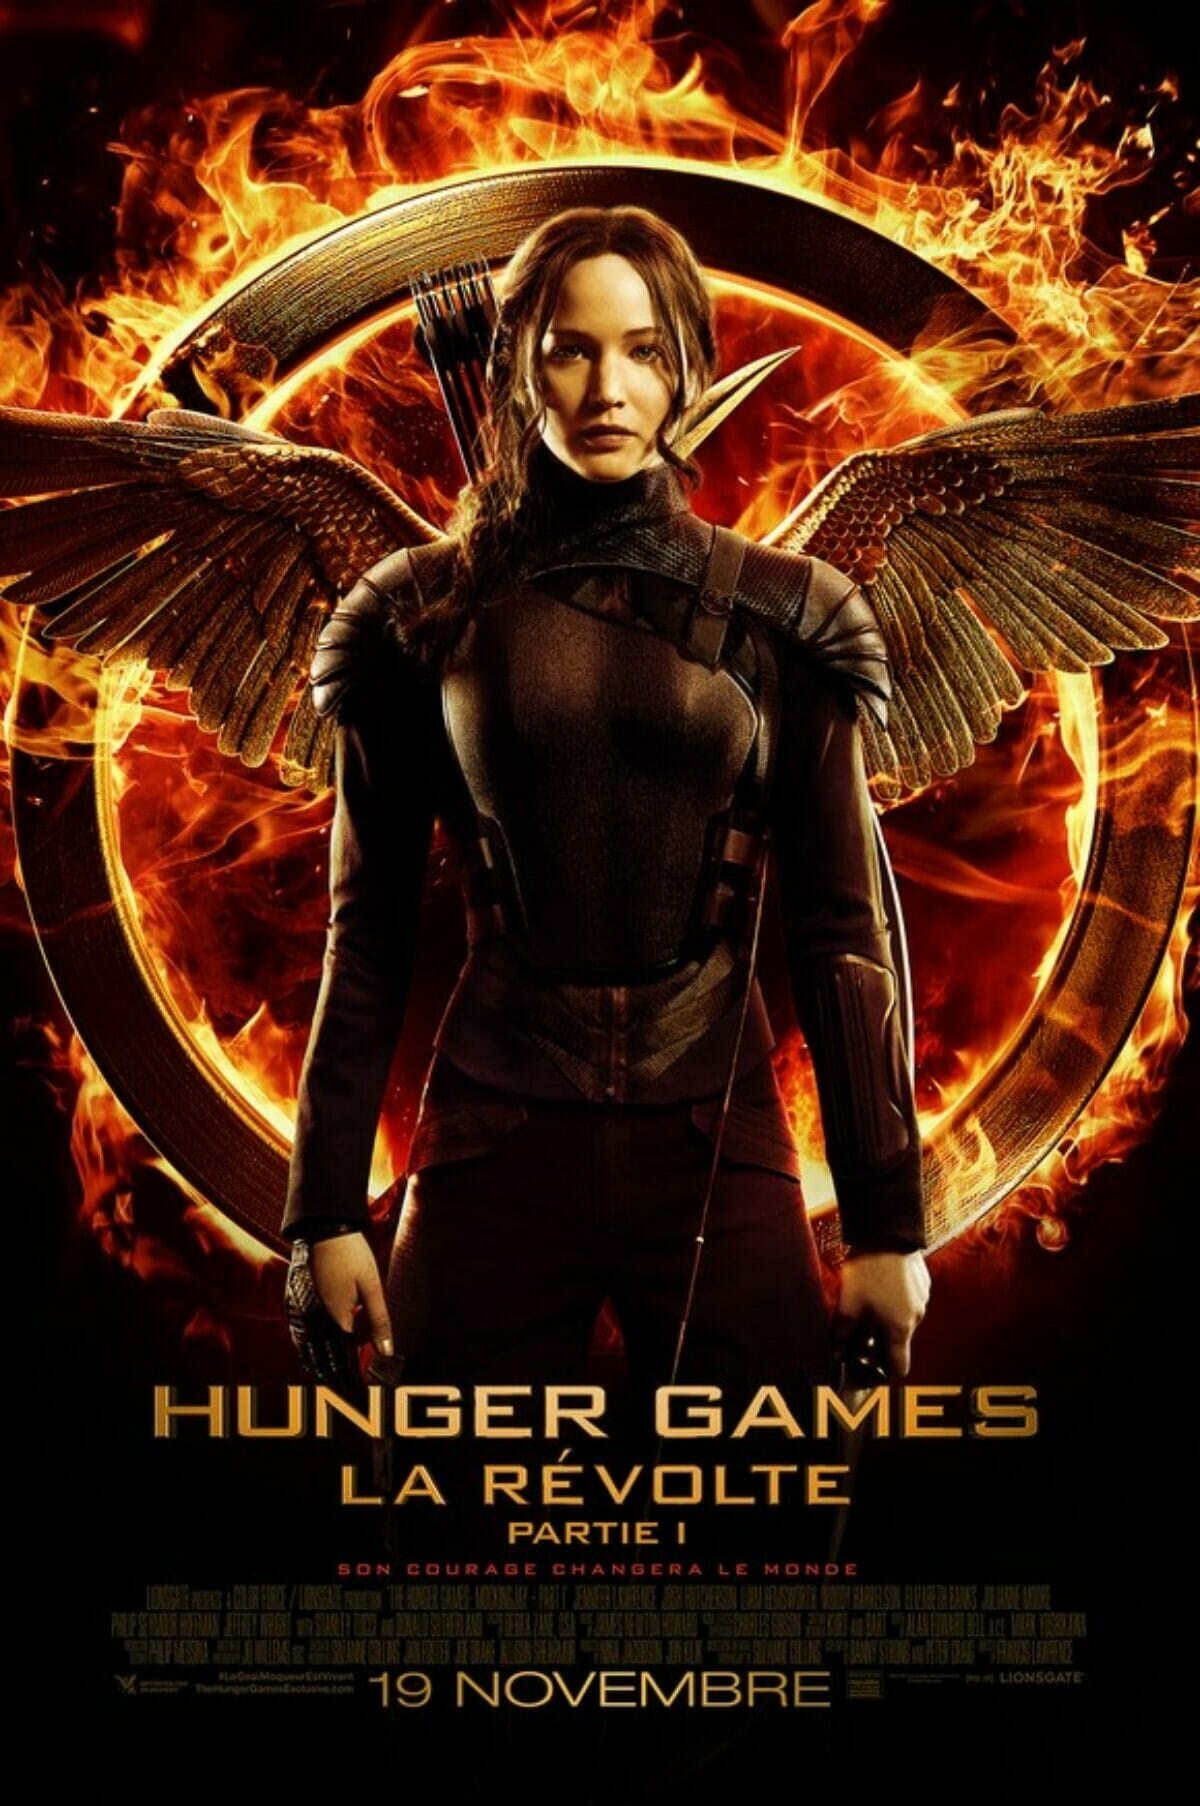 Hunger-Games-la-révolte-1-poster-france